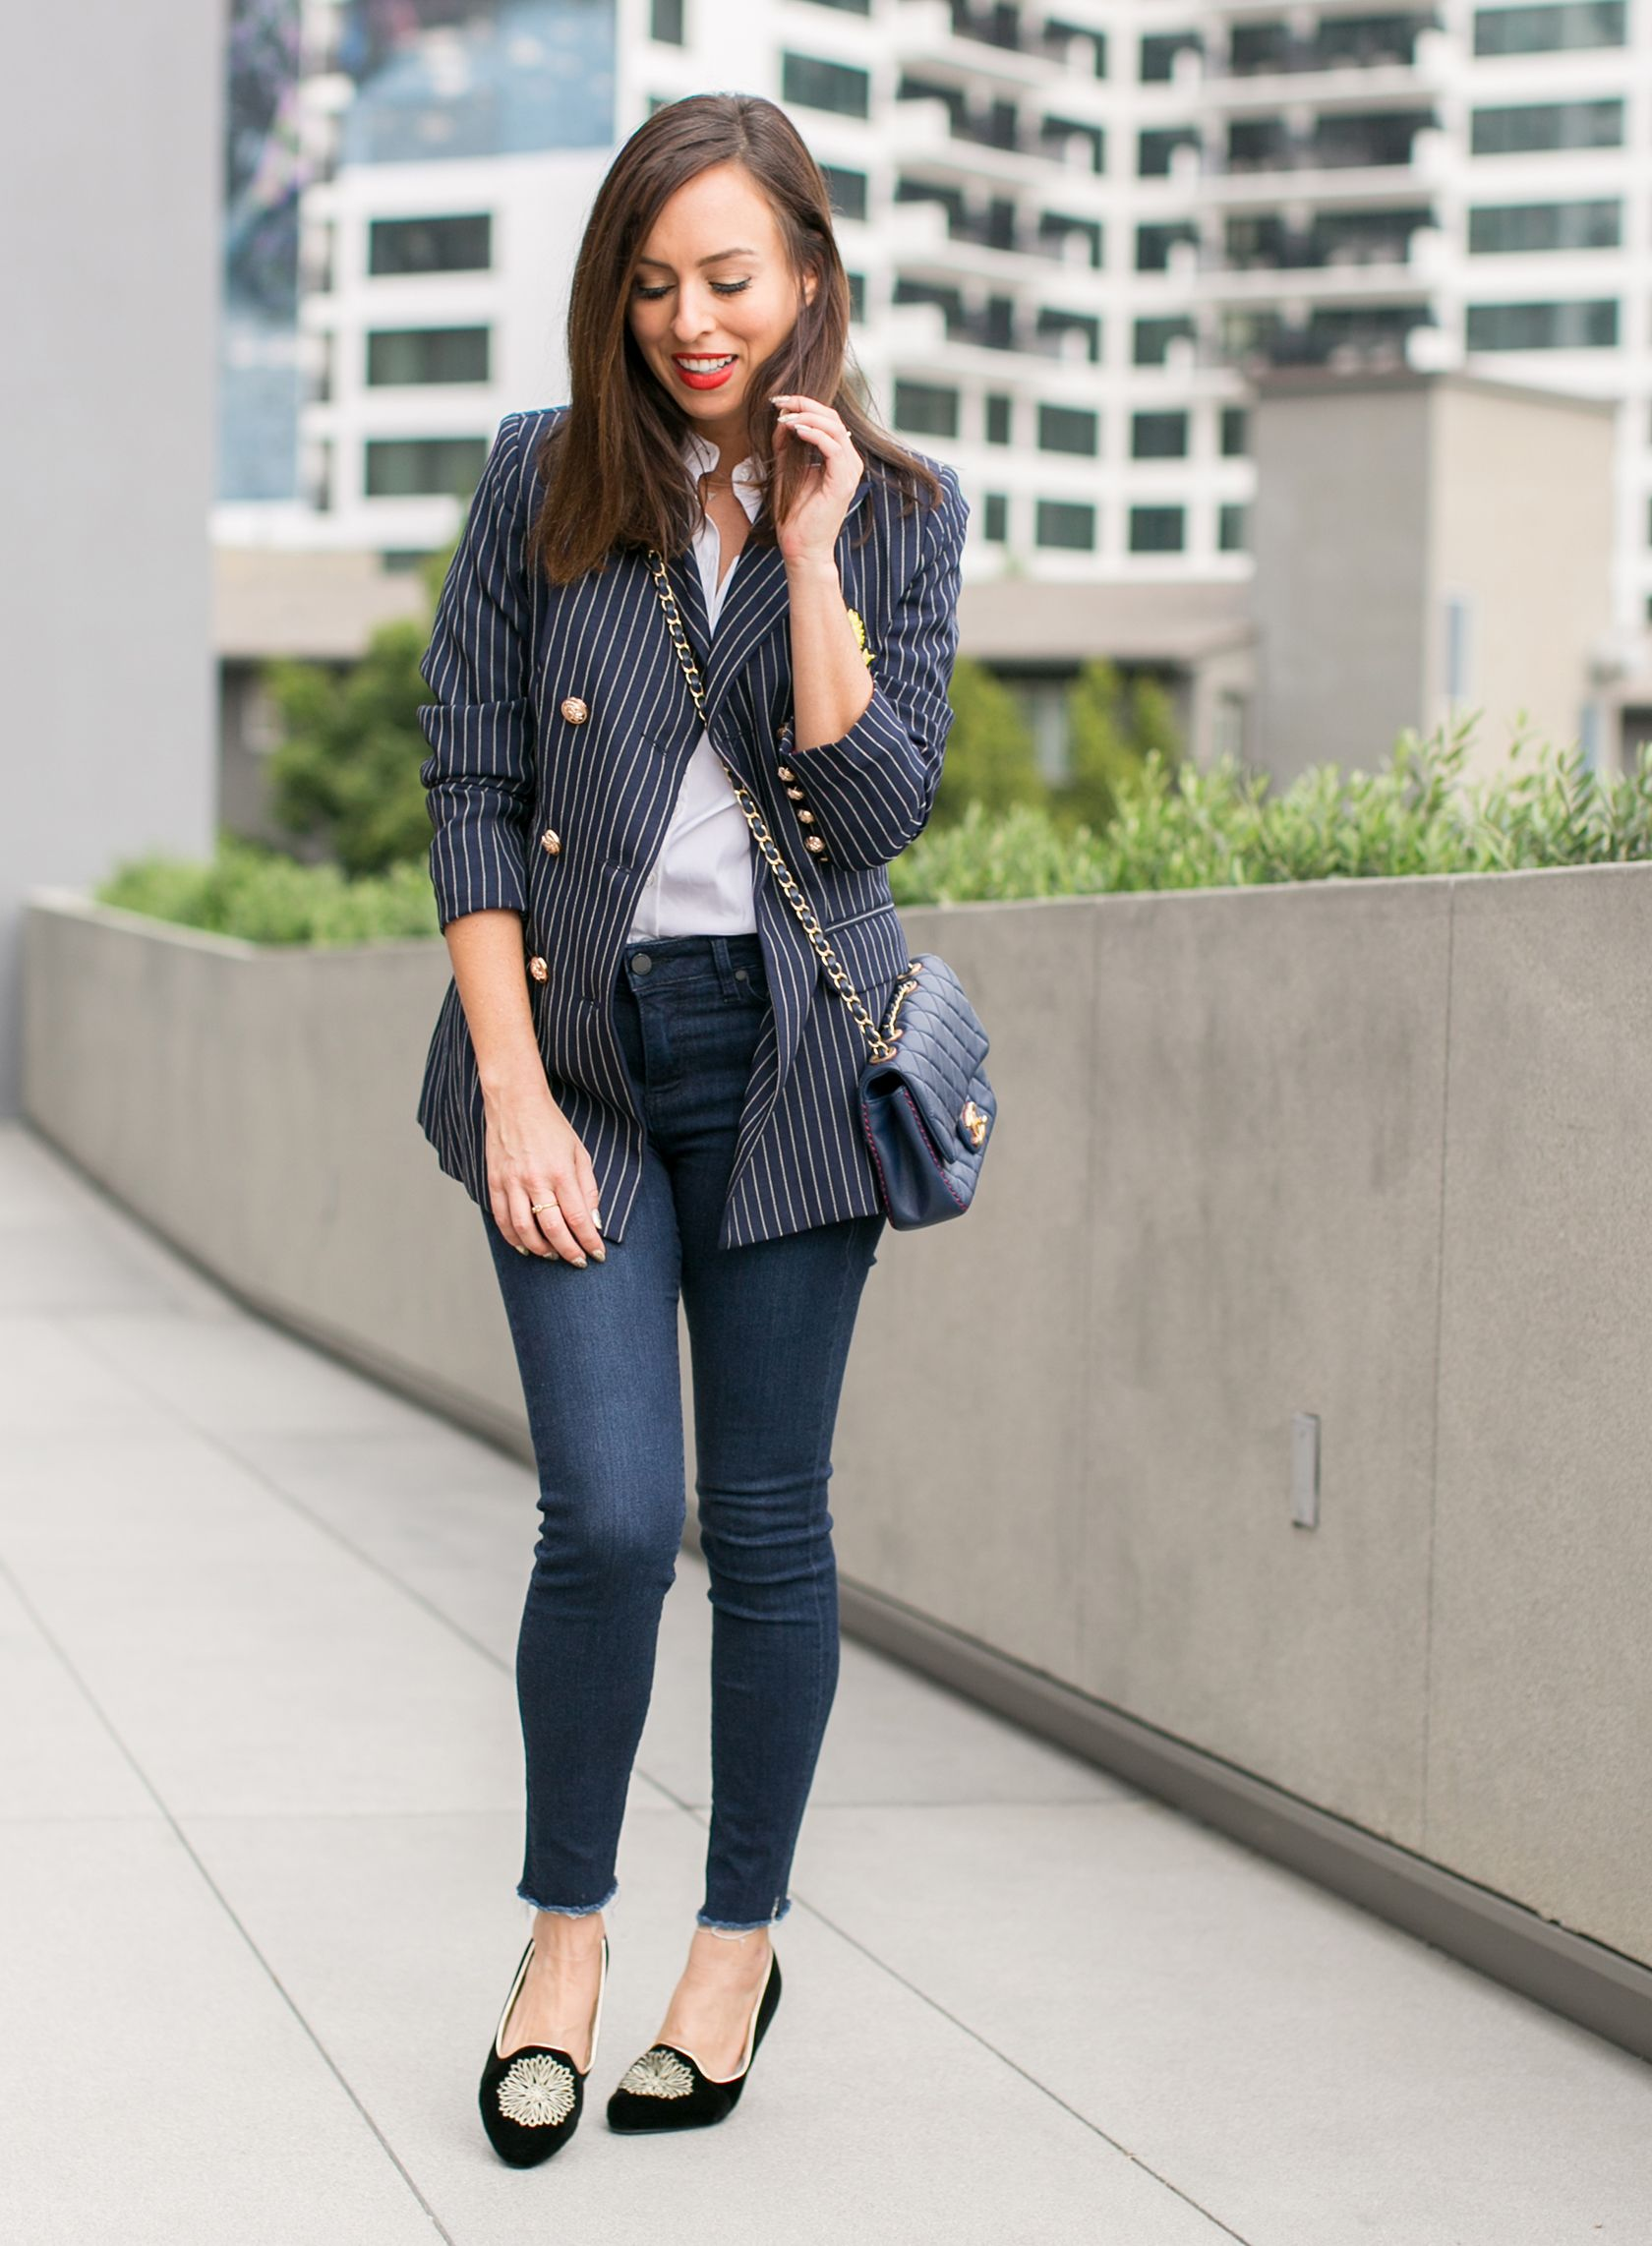 b93d7f1b5c0 Sydne Style shows what to wear to the office for casual friday in jeans and  a pinstripe blazer  blazer  chanel  chanelbag  casualstyle  casualoutfit   jeans ...